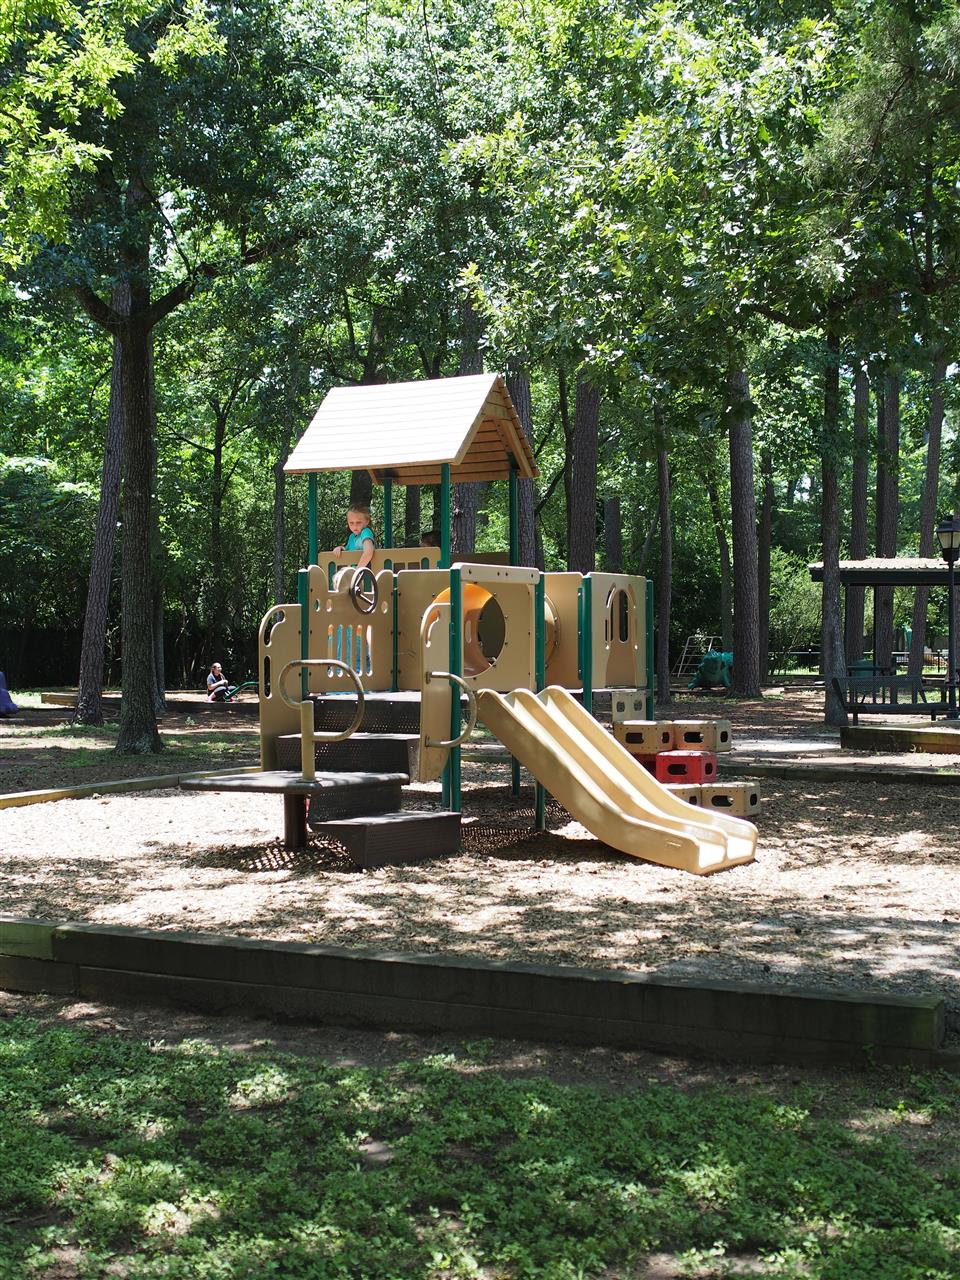 Hedwig Park is a great park right next to Spring Branch Memorial Library. It has trees, covered shelters with picnic tables. Kids will love the many different swings and play sets they have available. Very clean, quiet and safe.